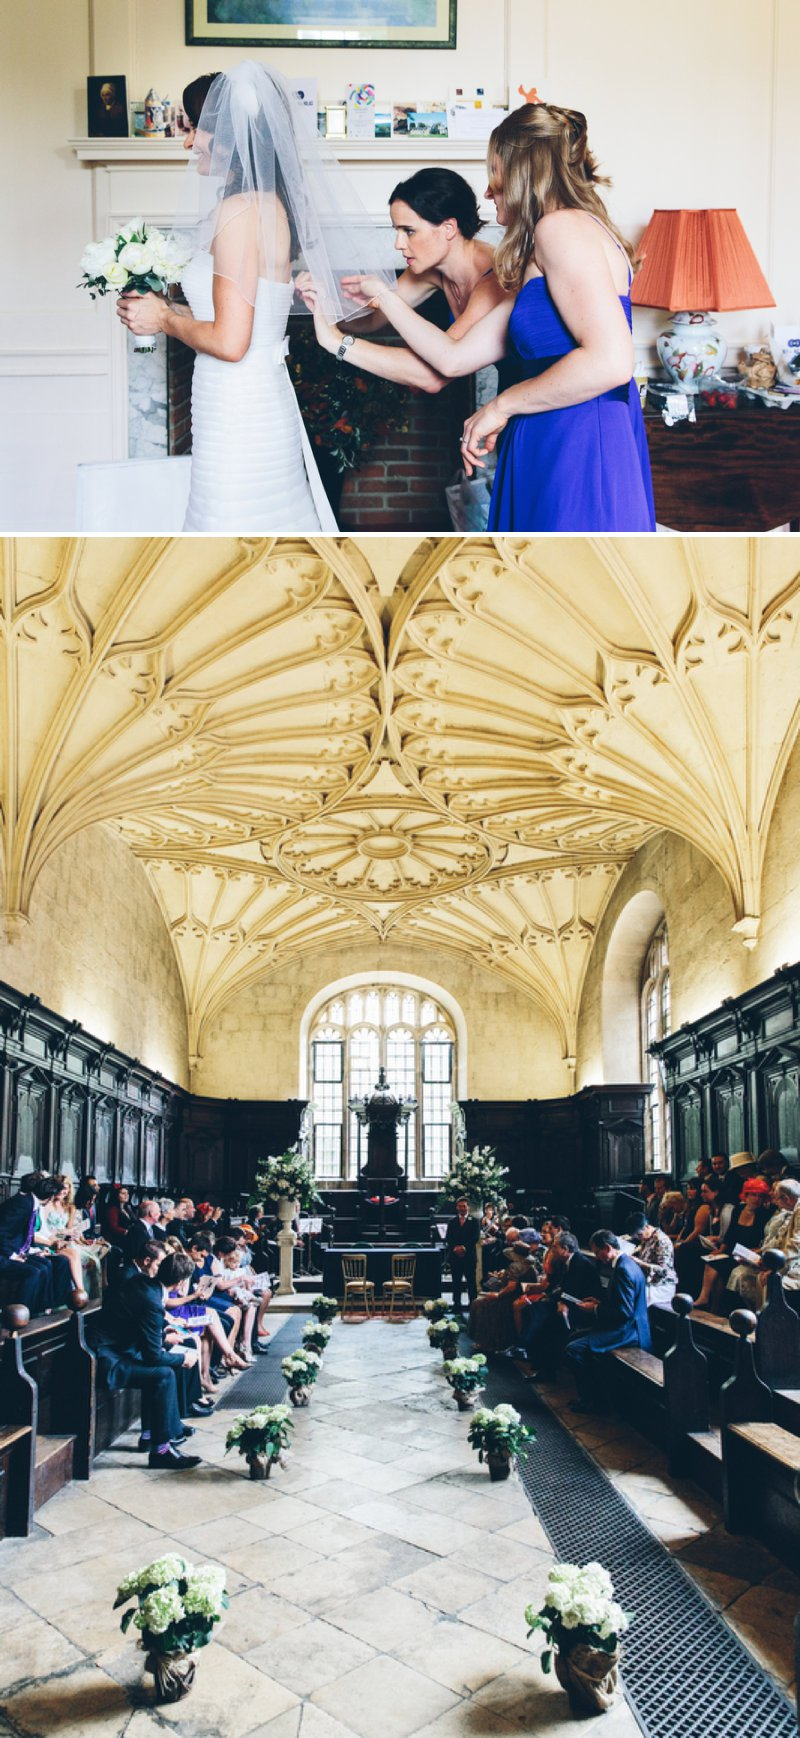 Elegant Contemporary Wedding At The Bodleian Library Queens College Oxford With Bride In Ulanova By Pronovias And Jimmy Choo Heels With Groom In Suit By Cad And The Dandy And Bridesmaids In Royal Blue Images By Mister Phill 2